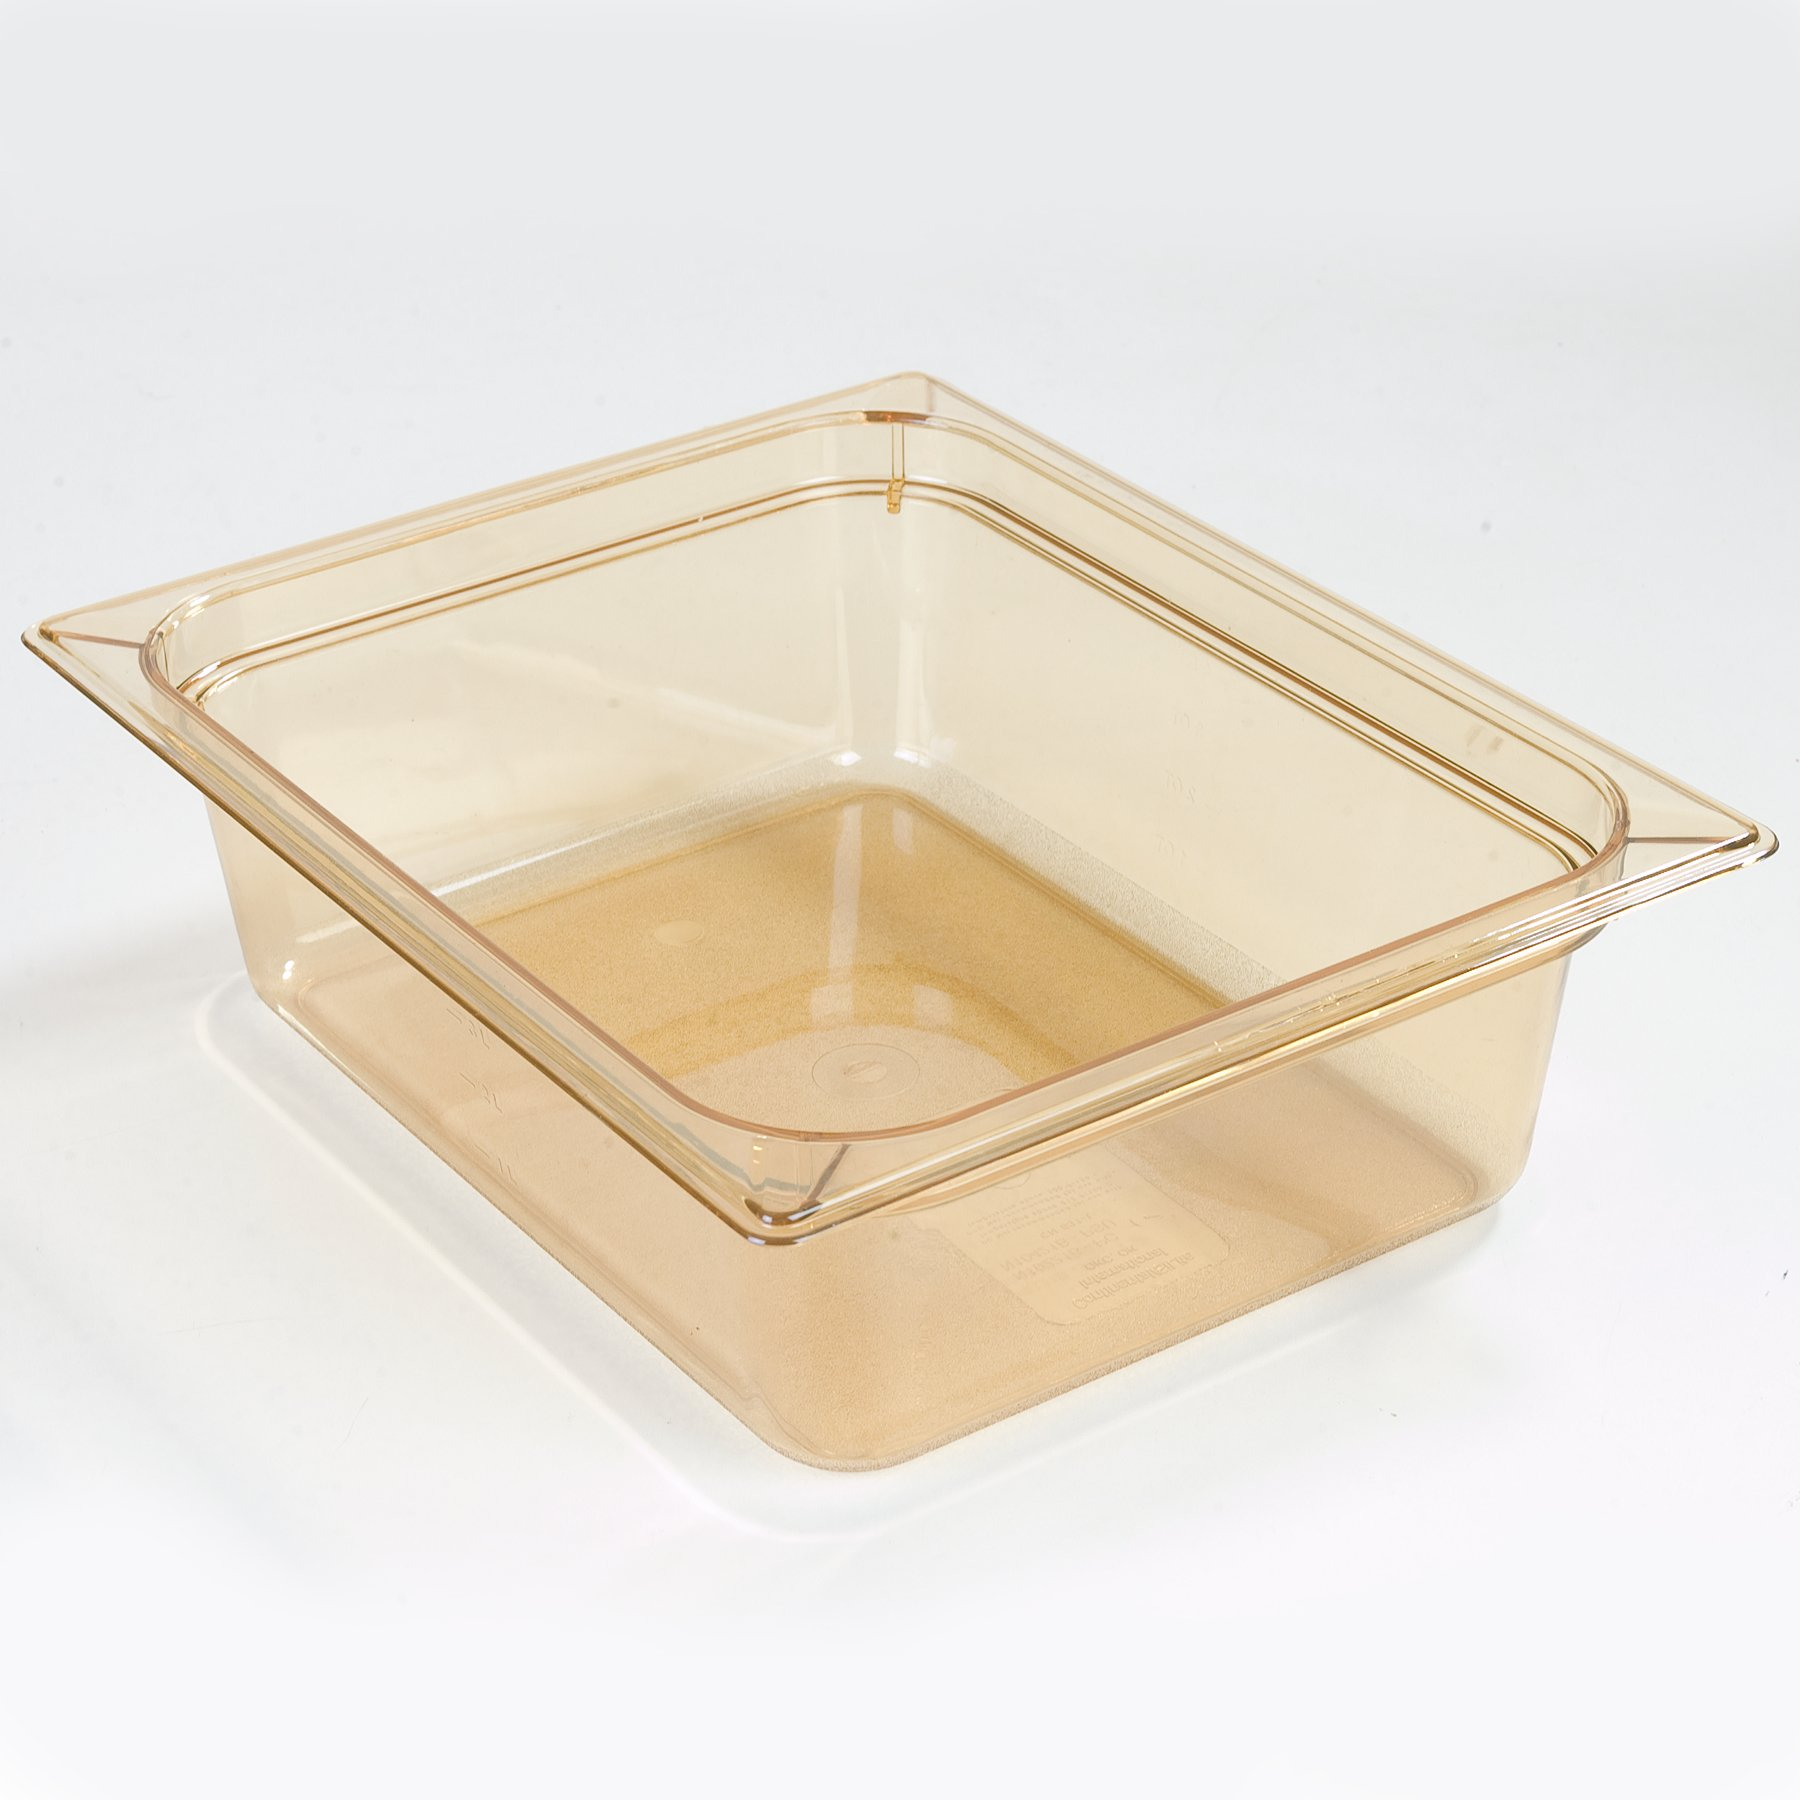 Carlisle 10421B13 StorPlus High-Heat Half-Size Food Pan, 6.6 qt. Capacity, 12-3/4 x 10-3/8 x 4'', Amber (Case of 6)